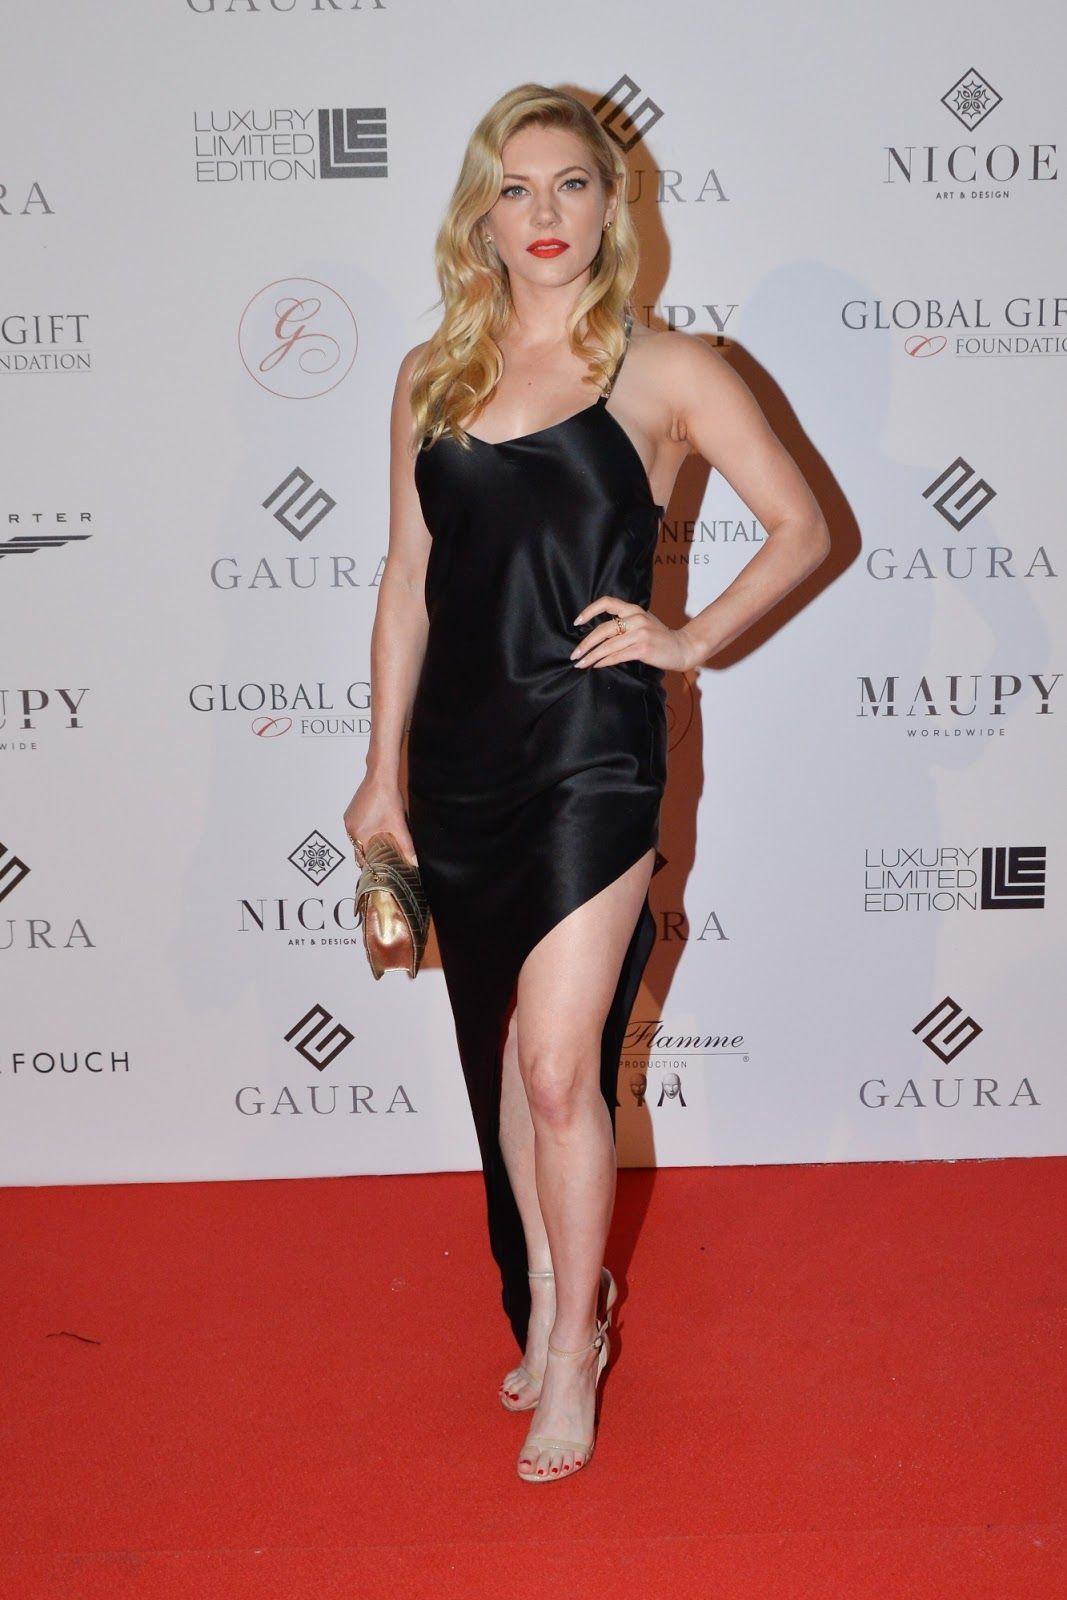 Katheryn Winnick // Attends the Global Gift Initiative, during the 71st Cannes F..., #71st #attends #beautifulcelebrities #Cannes #celebritiesaesthetic #celebritiesbeforeandafter #celebritiesfemale #celebritiesfunny #celebritiesmale #celebritiesquotes #celebritiesstyle #celebritieswithoutmakeup #famouscelebrities #gift #Global #Initiative #Katheryn #Winnick